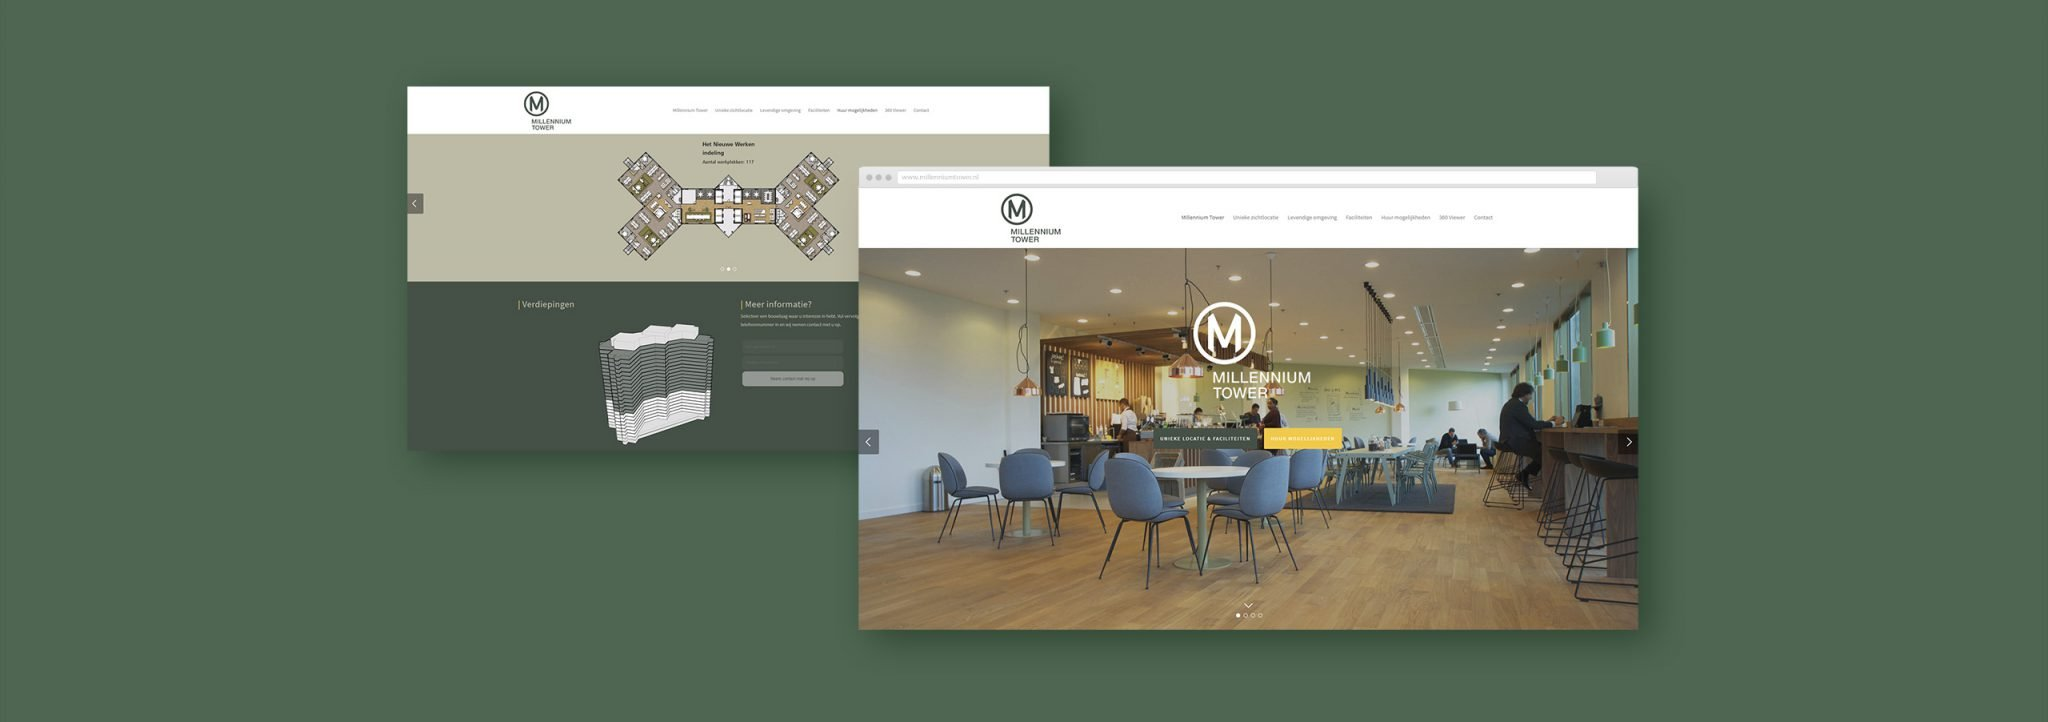 innovative-digital-amsterdam-webdesign-millennium-tower-website-01